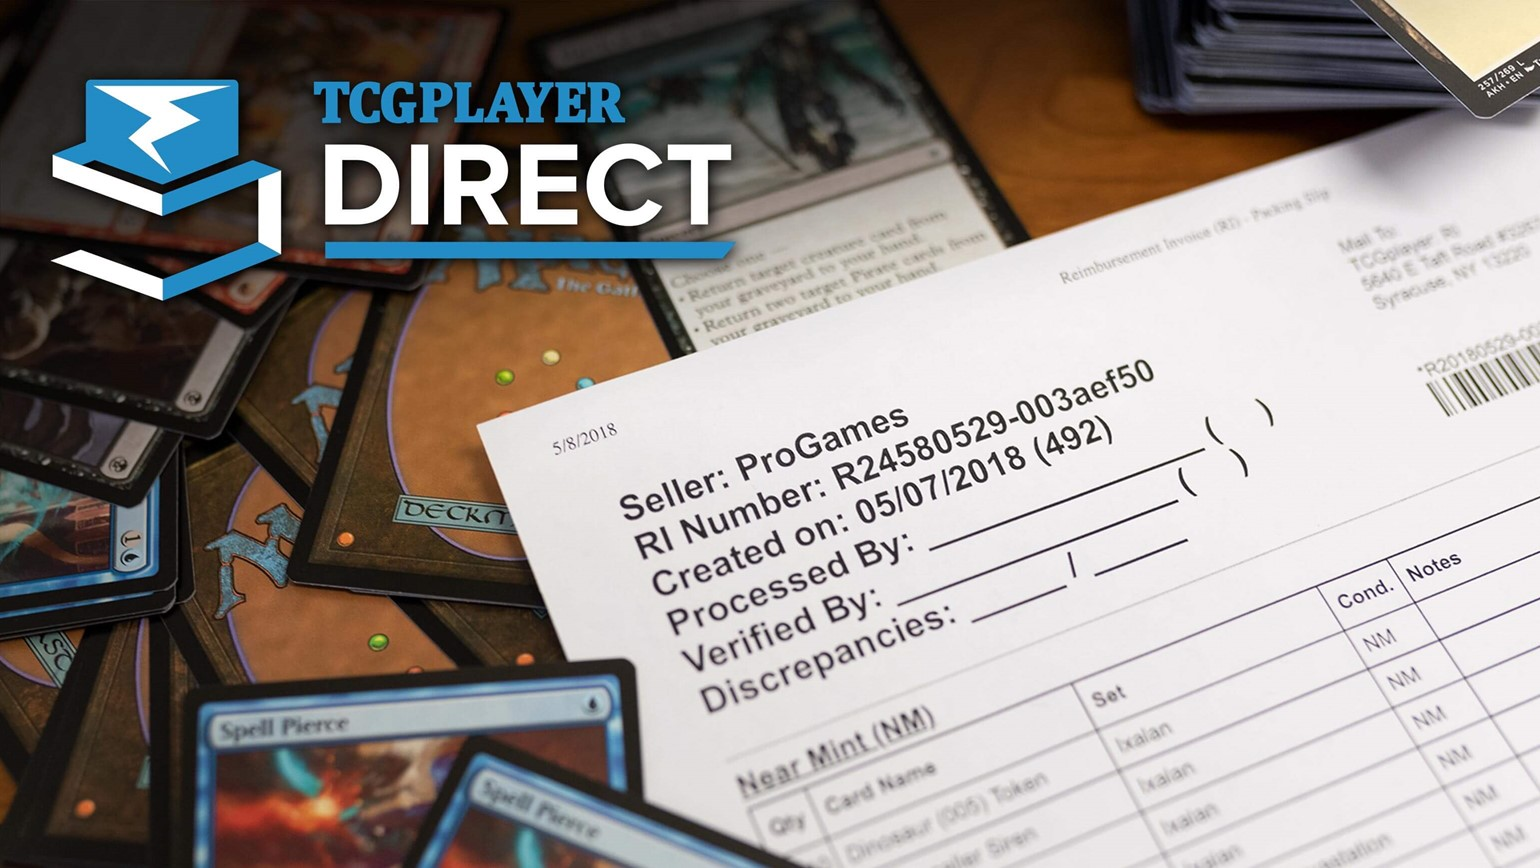 TCGplayer Direct Reimbursement Invoice Best Practices